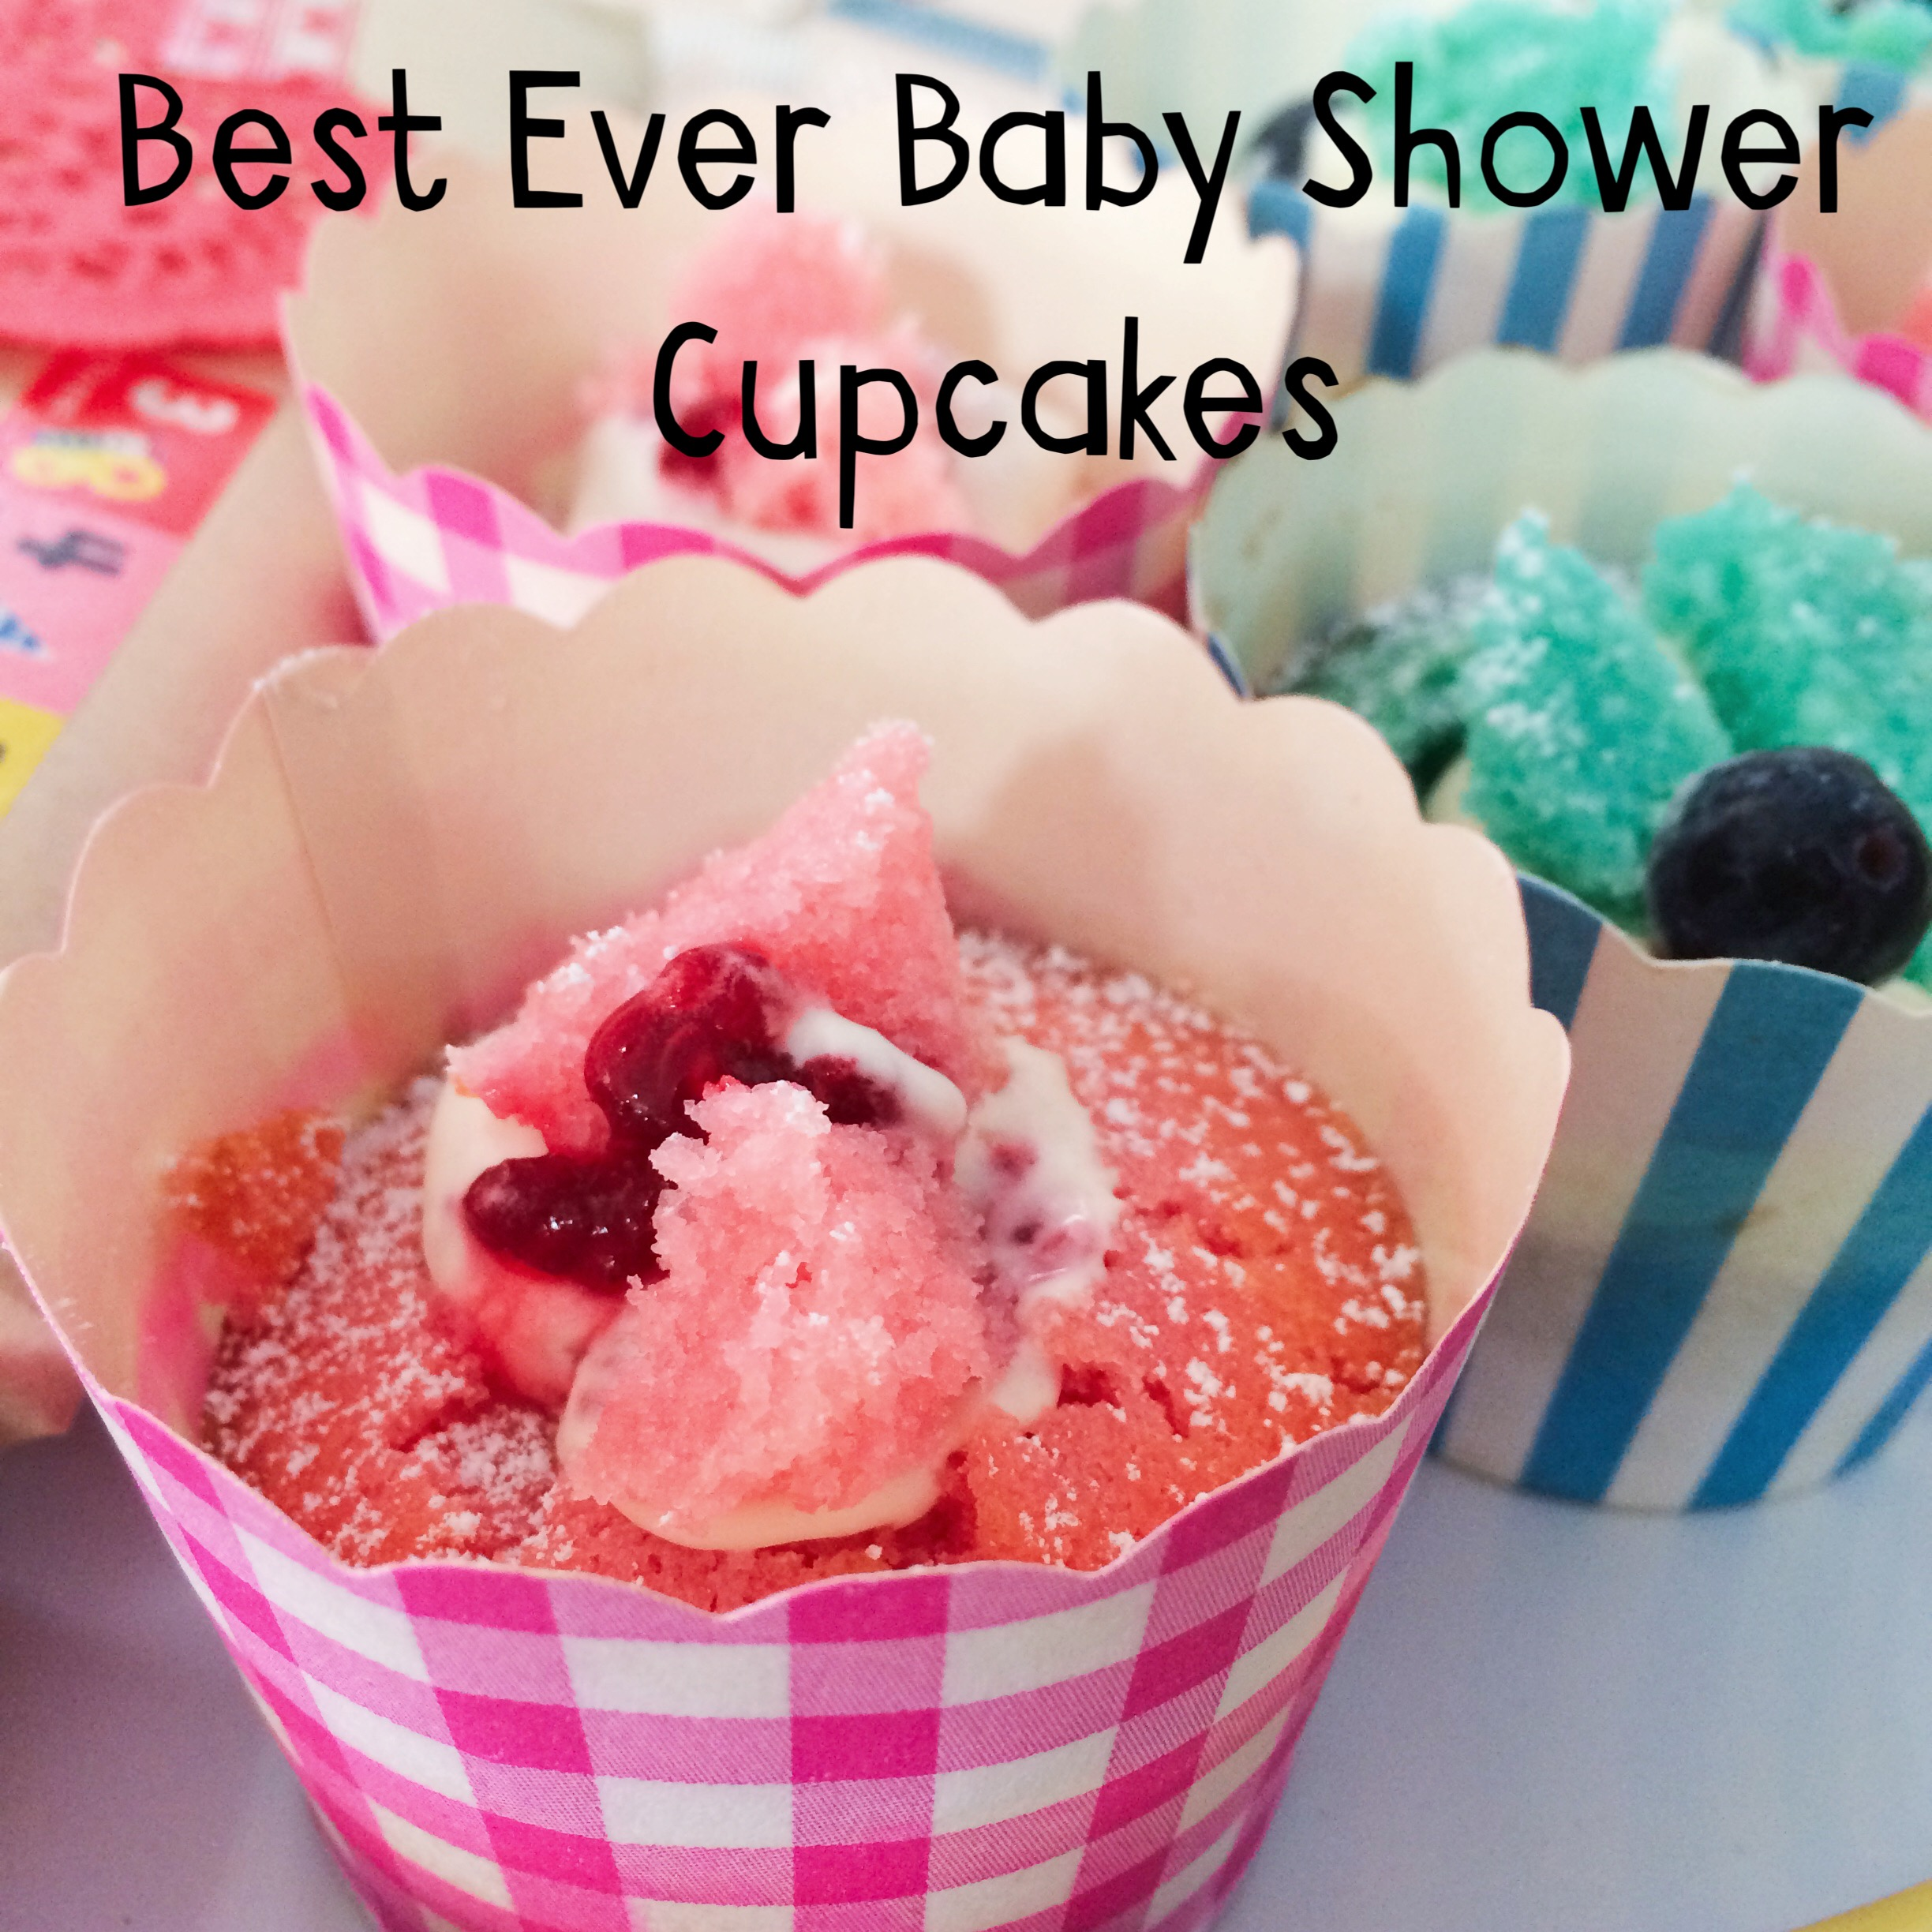 Recipe best ever baby shower cupcakes oh creative day for Cupcake recipes for baby shower girl